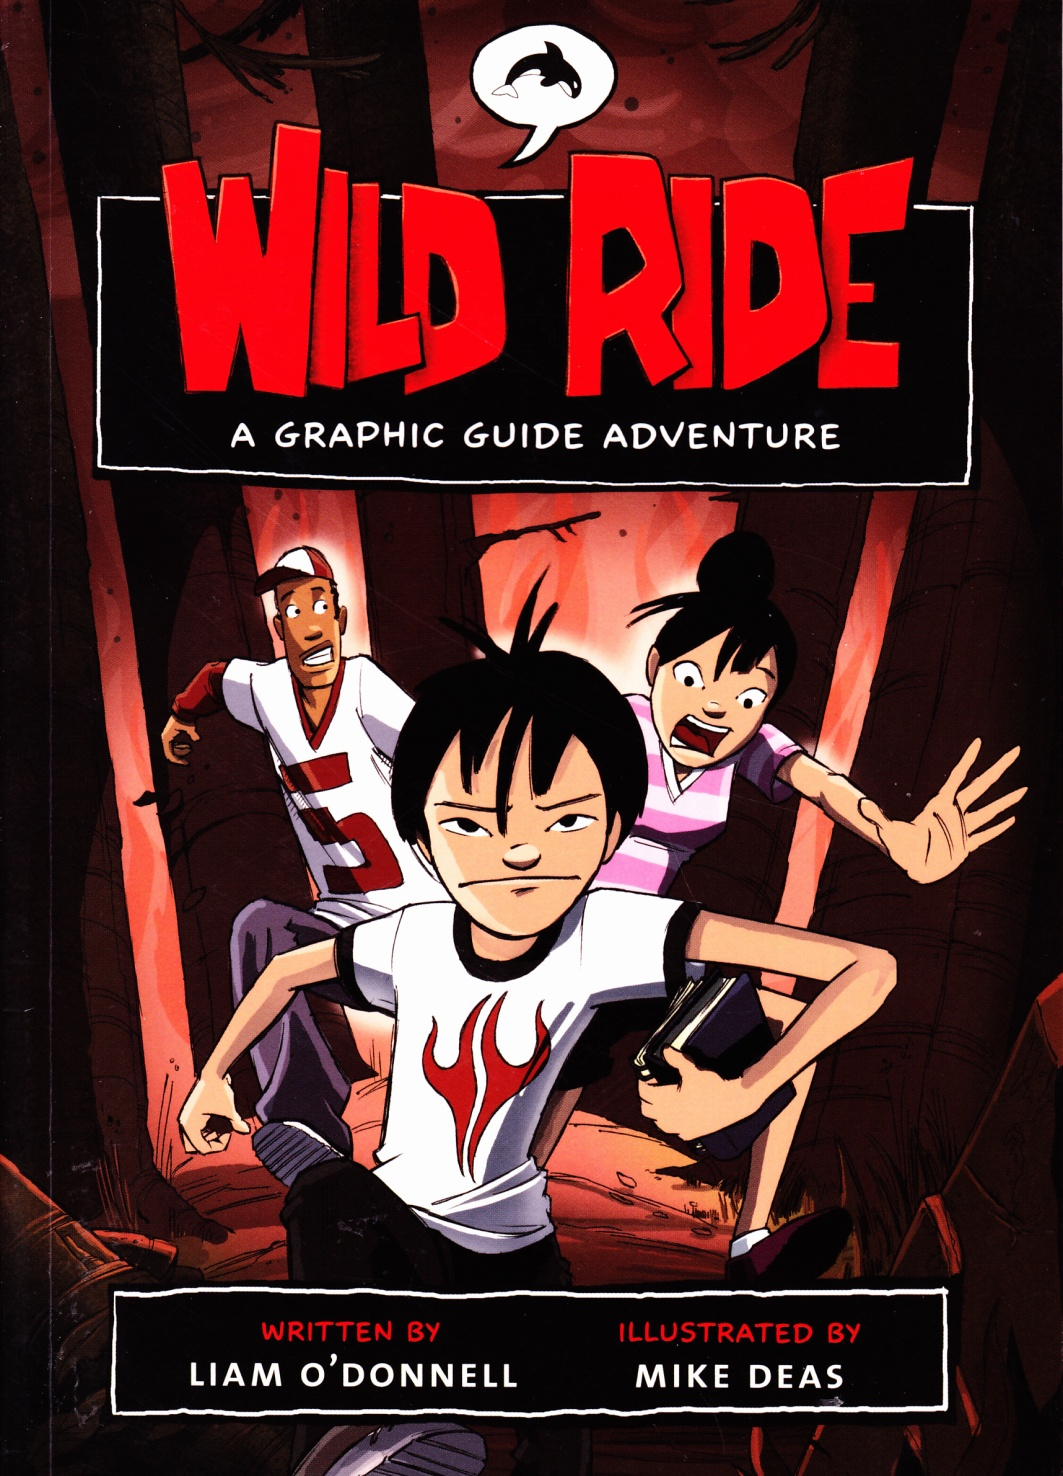 C:\Users\Robert\Documents\CARTOONING ILLUSTRATION ANIMATION\IMAGE BY CARTOONIST\D\DEA Mike, Wild Ride, 2007, fc.jpg